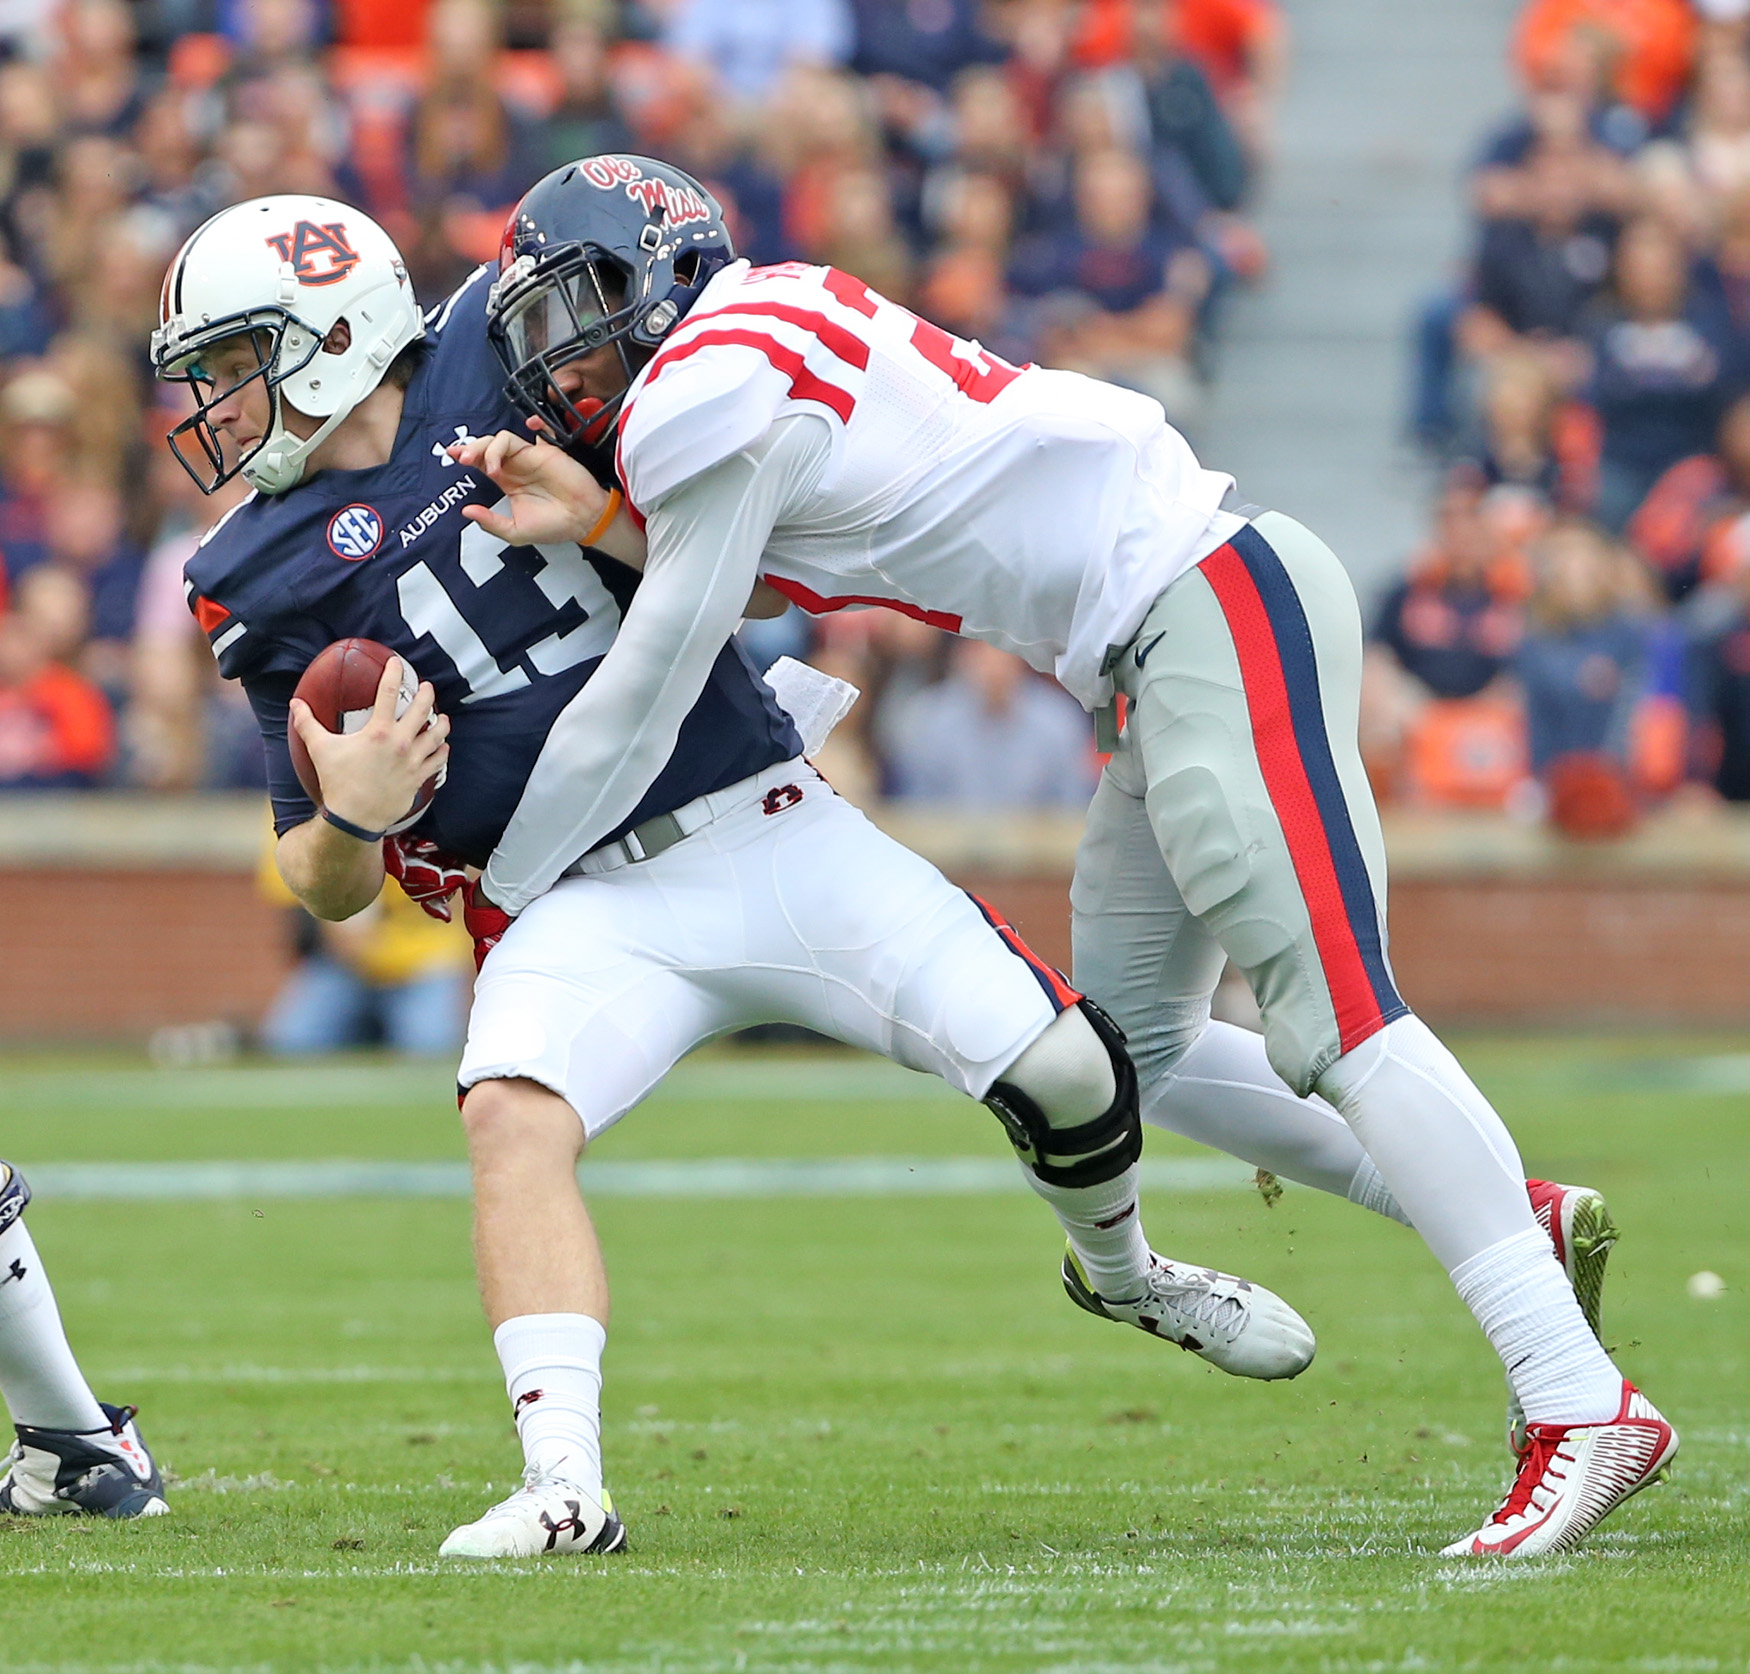 Ole Miss Football vs Auburn on October 31st, 2015 in Auburn, AL. Photo by Joshua McCoy/Ole Miss Athletics